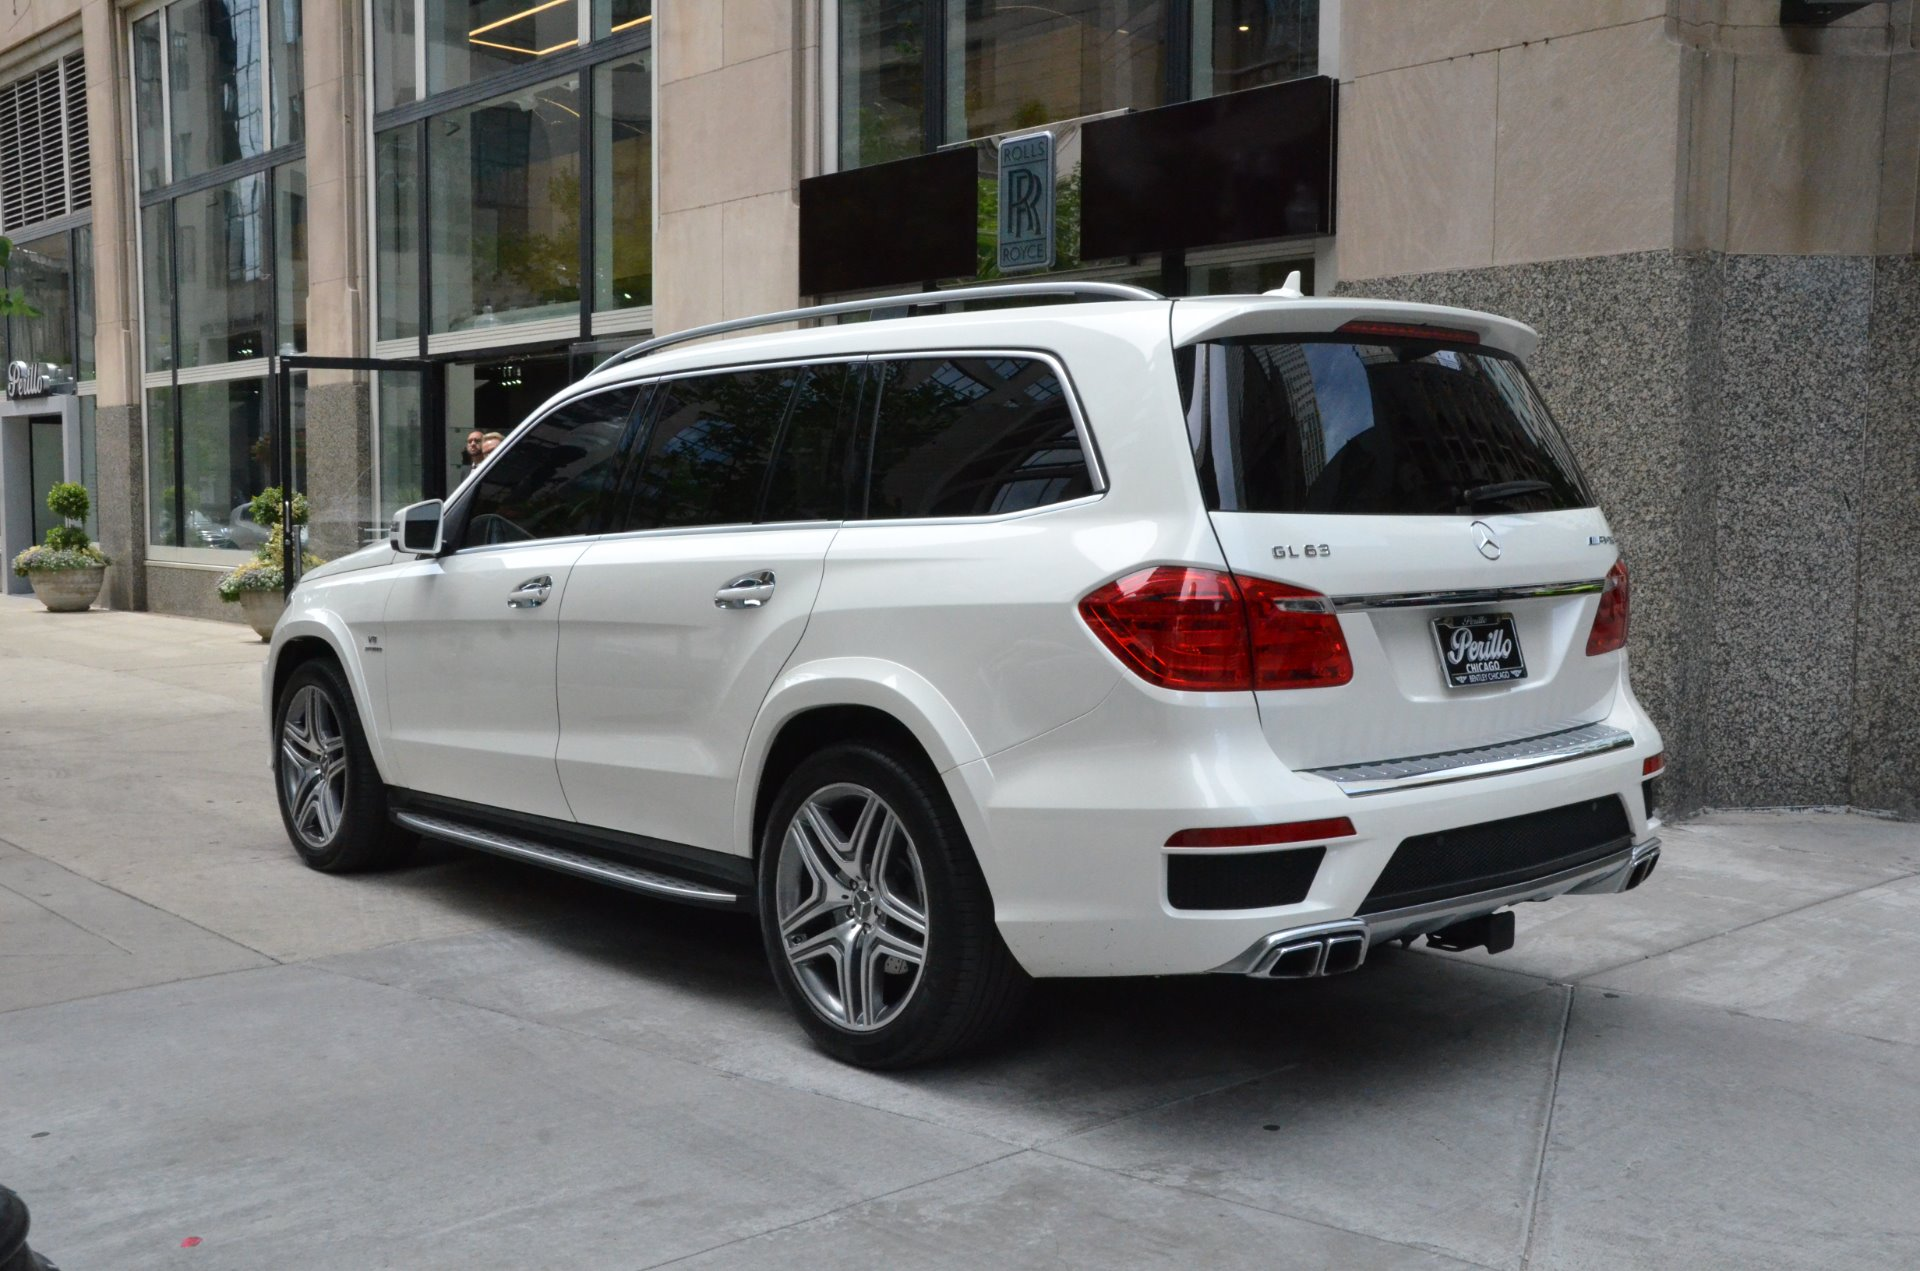 2014 mercedes benz gl class gl63 amg stock r274ab for sale near chicago il il mercedes benz. Black Bedroom Furniture Sets. Home Design Ideas